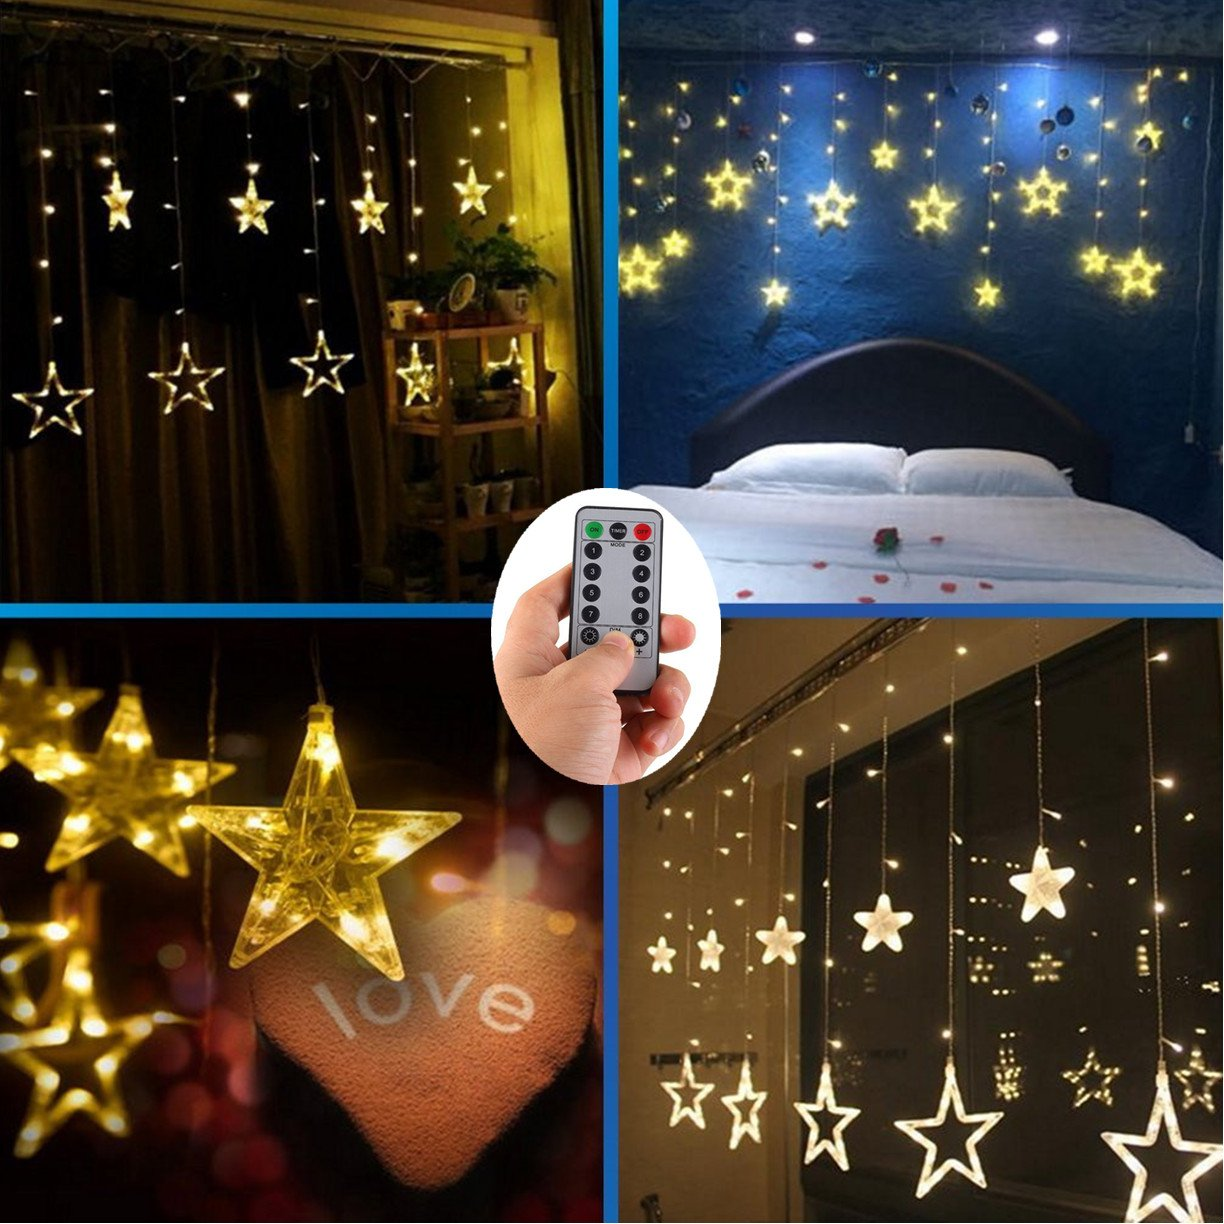 4 x AA Batteries Operated Curtain Lights with Remote,138 LED 12 Star Window Wall Icicle String Lights,8 Mode,Timer,Dimmable,Ideal for Outdoor Wedding Birthday Bar Camping Barbecue Party Decoration